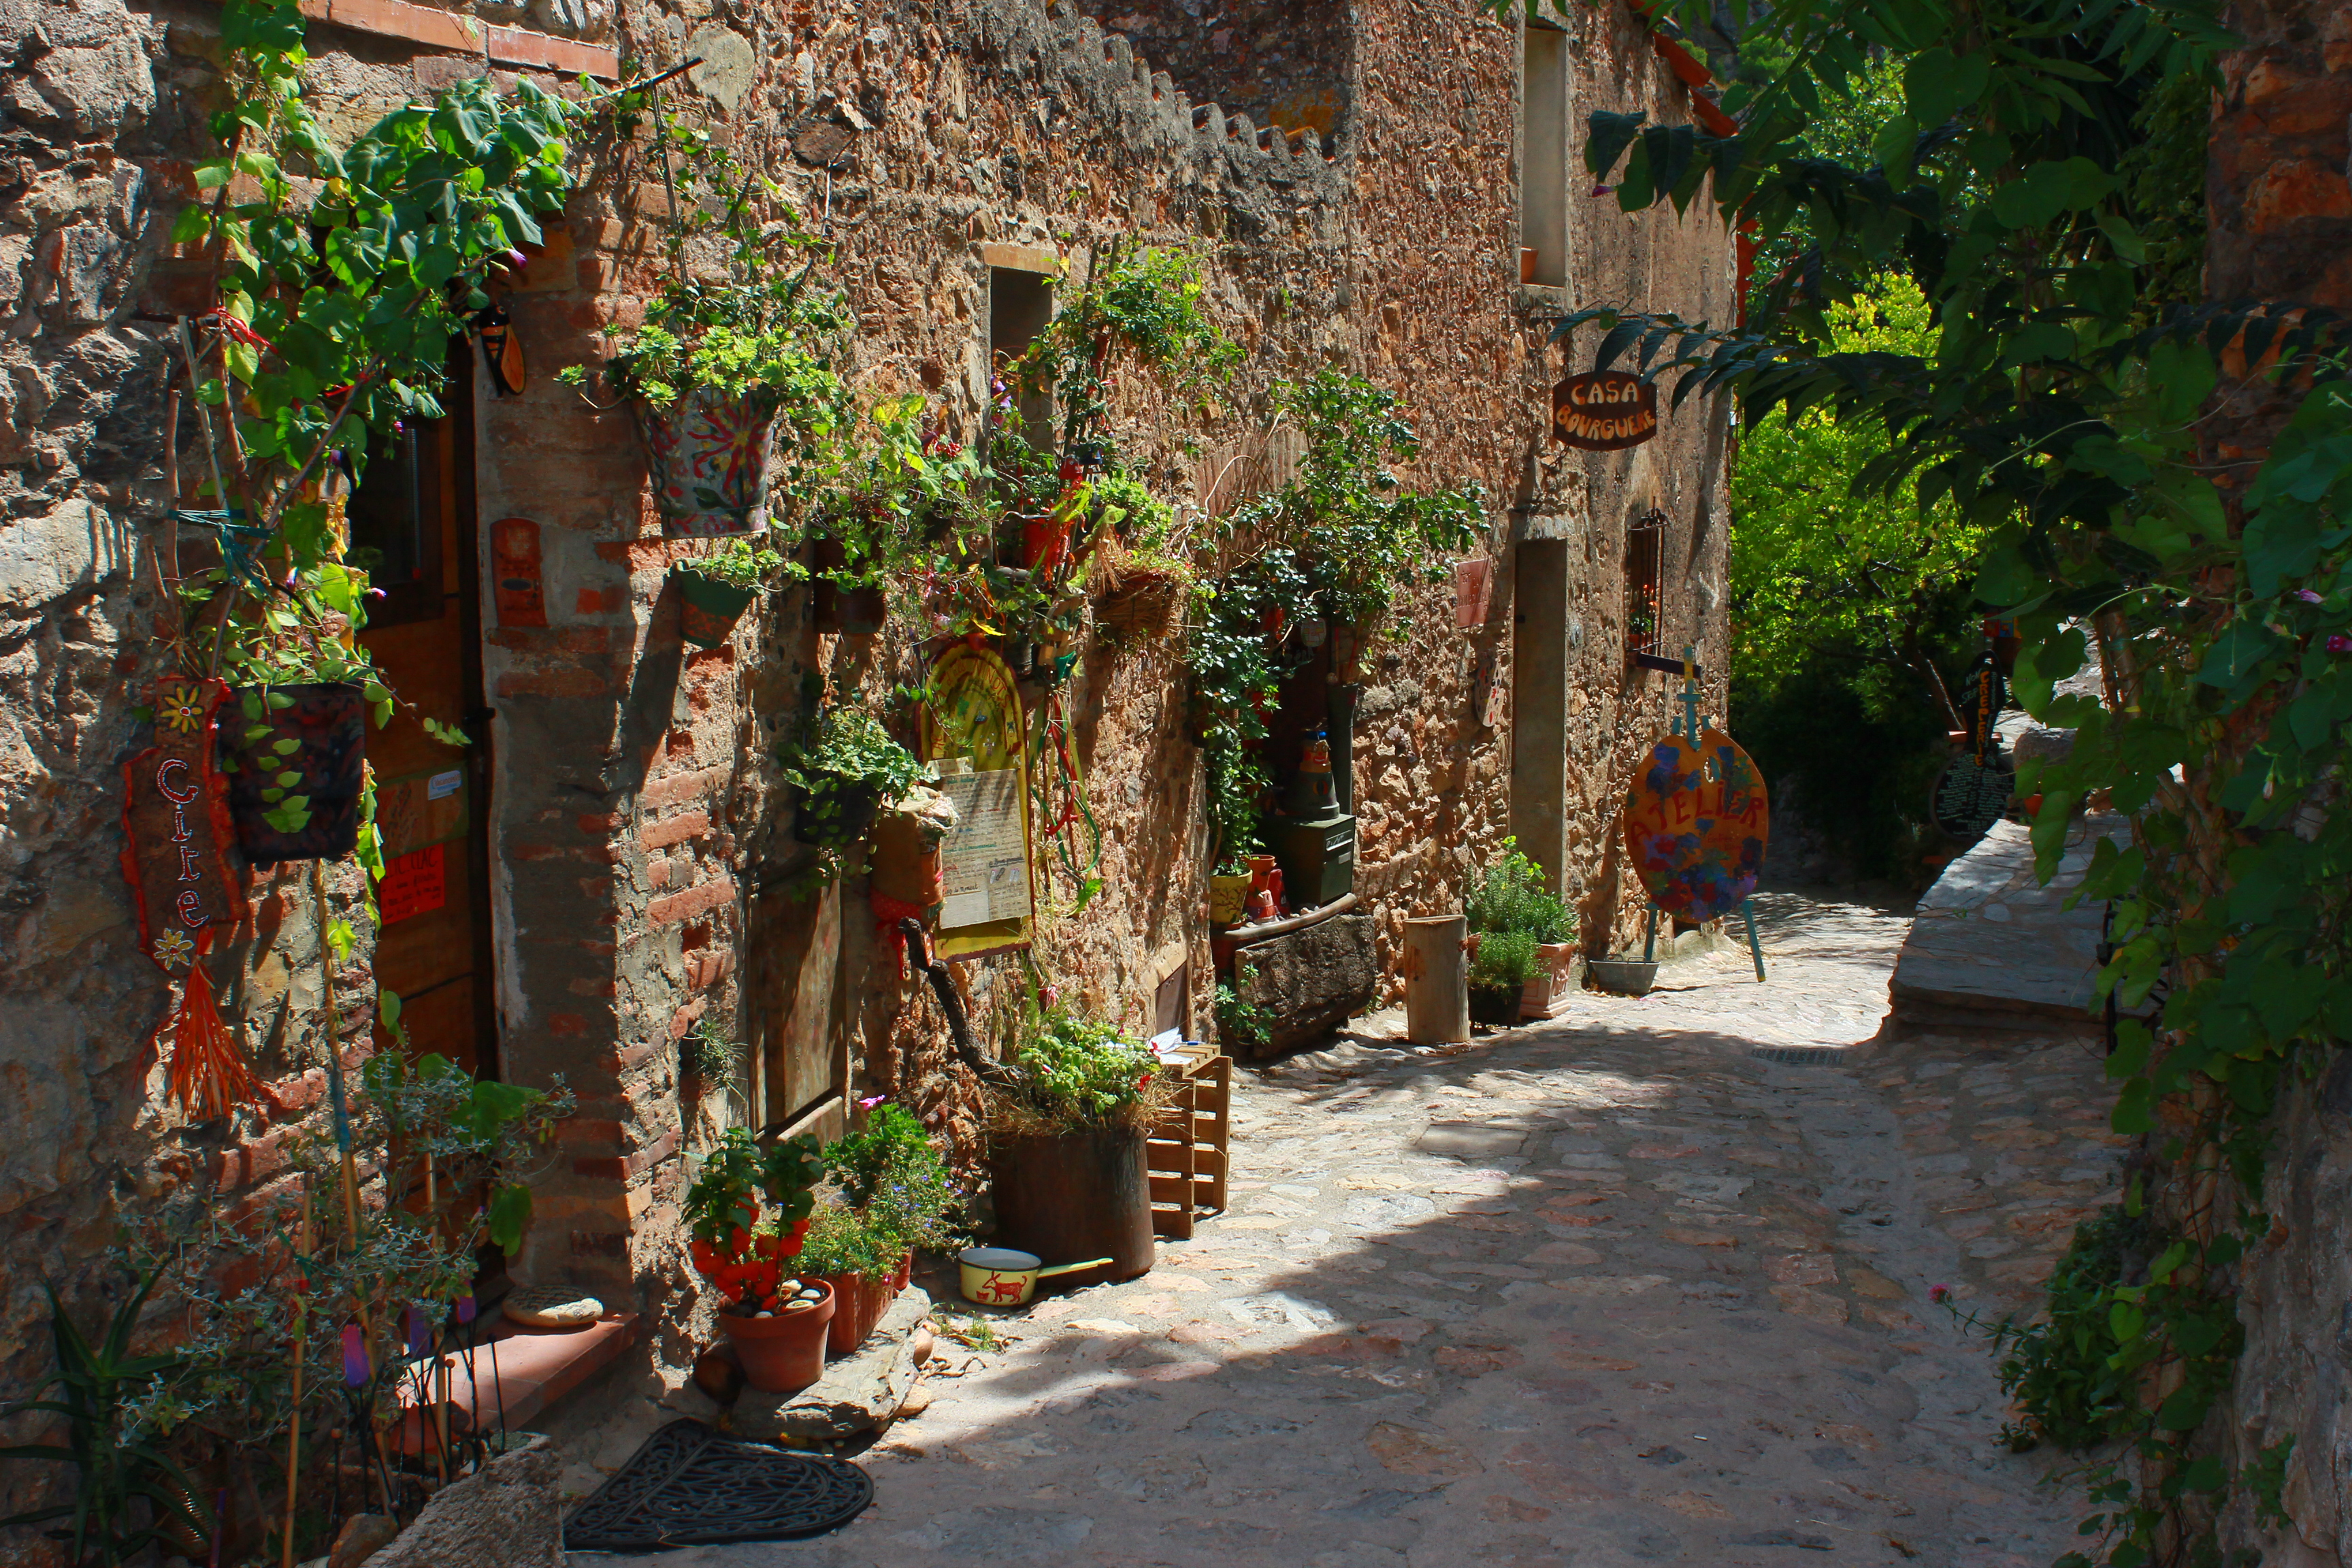 Castelnou_(66),_un_des_plus_beaux_village_de_France_35.jpg